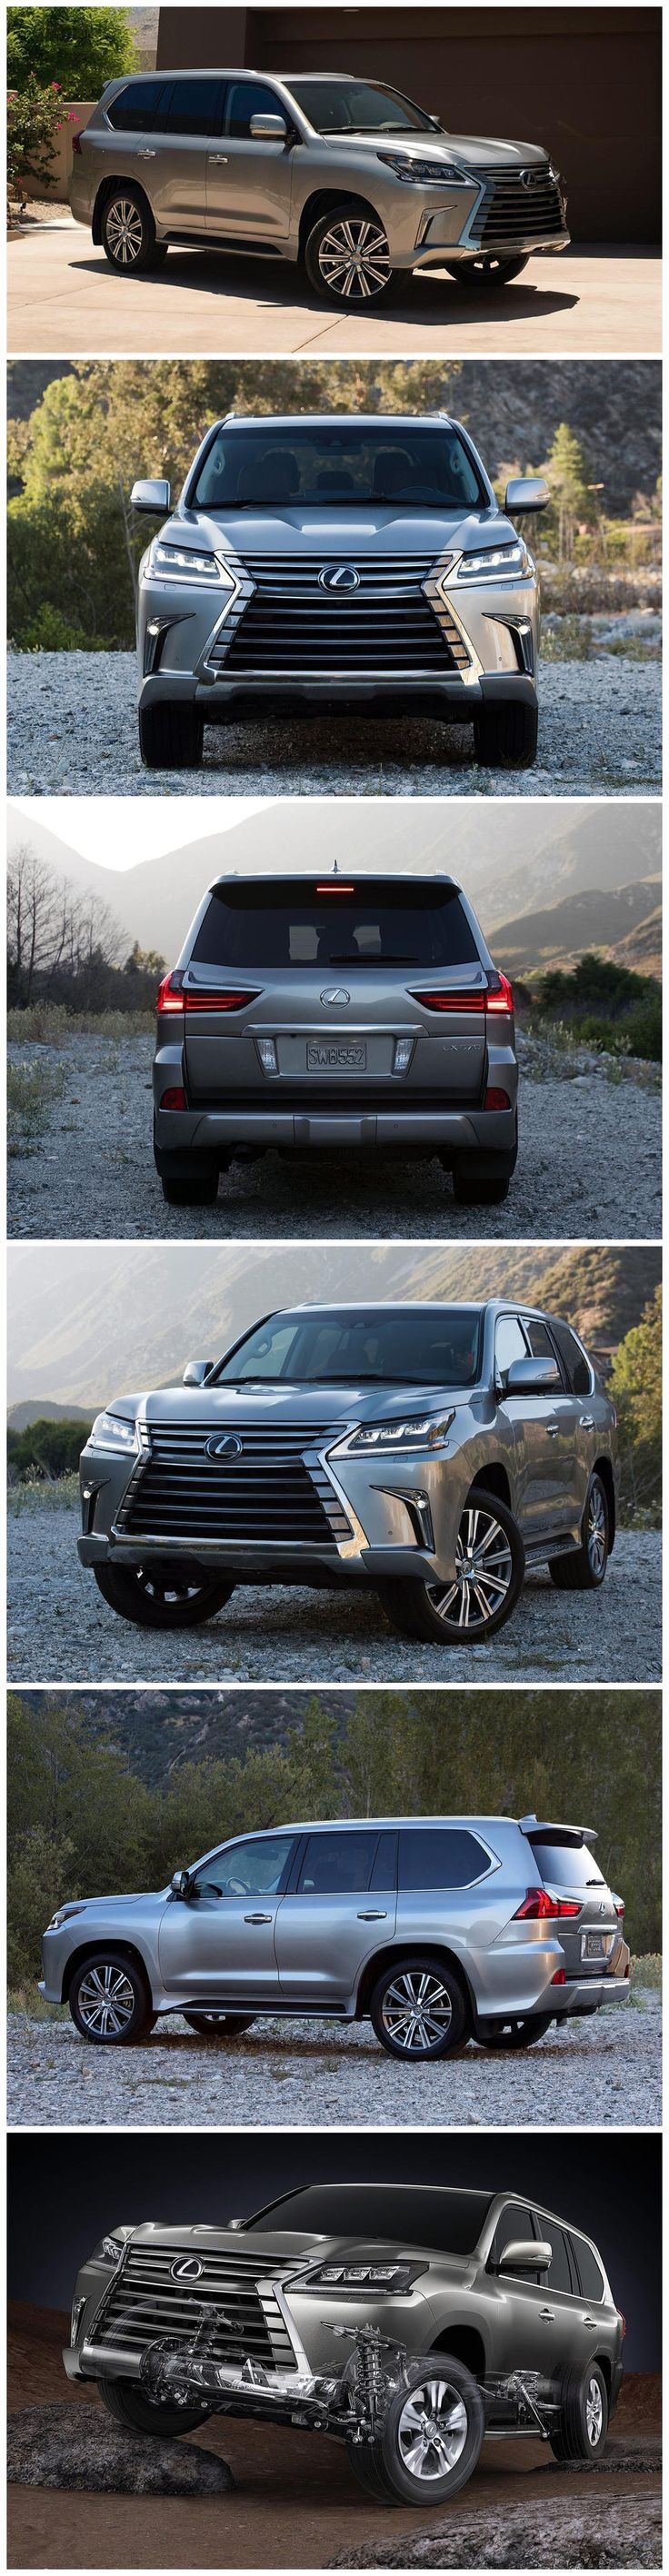 New 2016 Lexus LX 570. Land Cruiser capability, Lexus luxury!